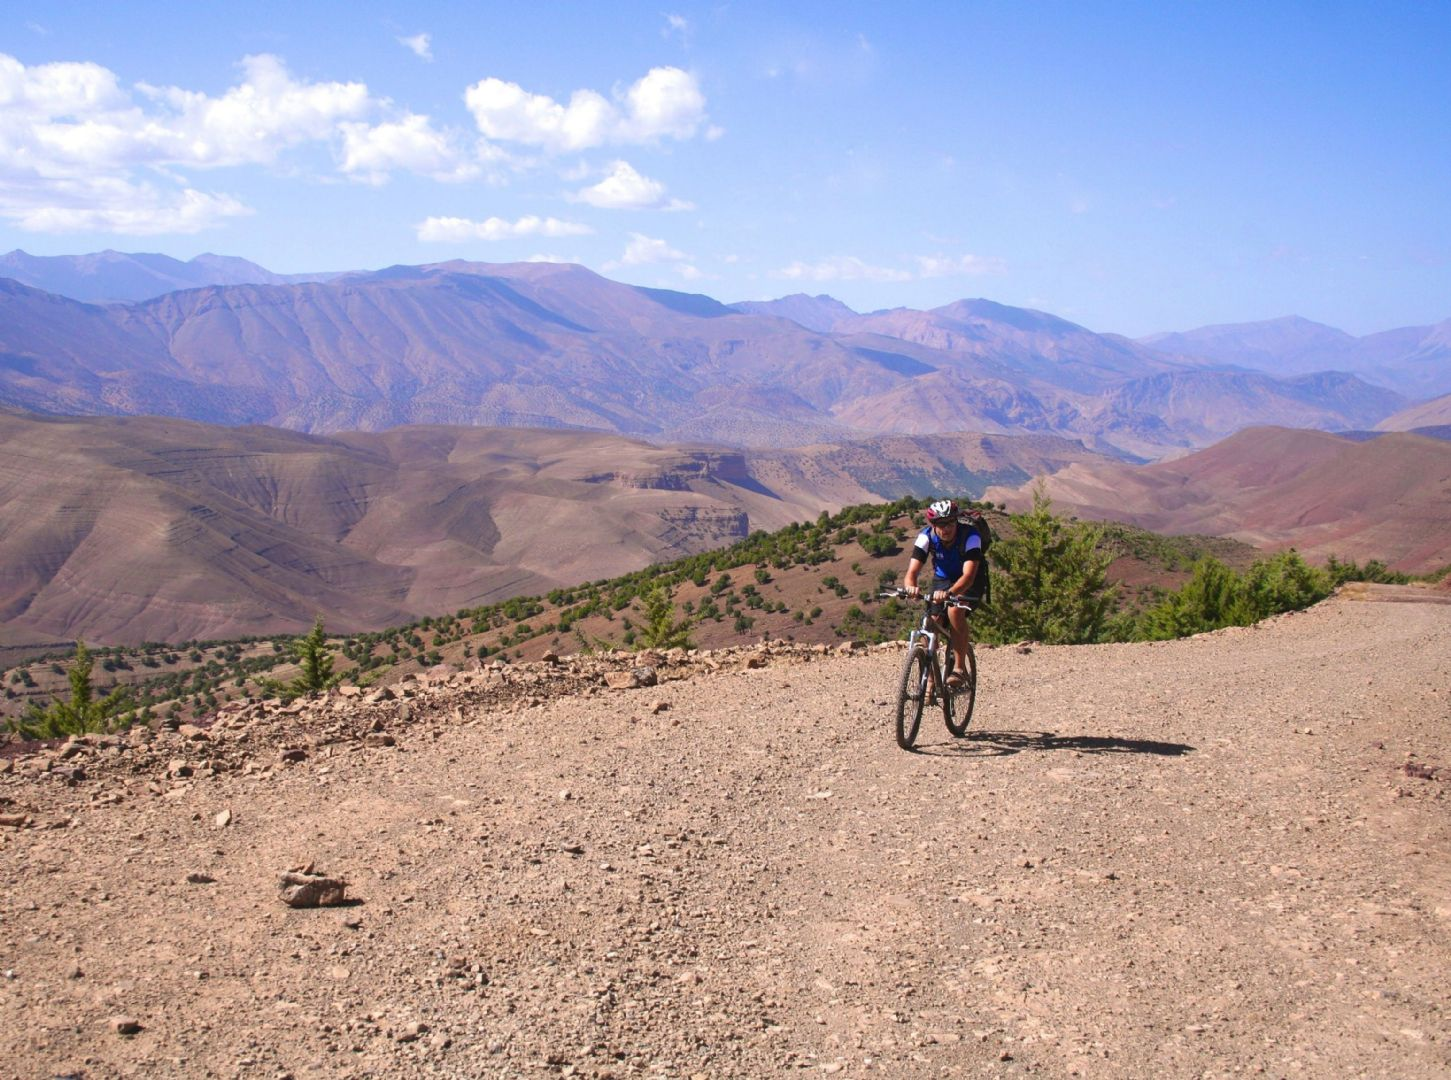 _Holiday.275.3817.jpg - Morocco - High Atlas Traverse - Mountain Biking